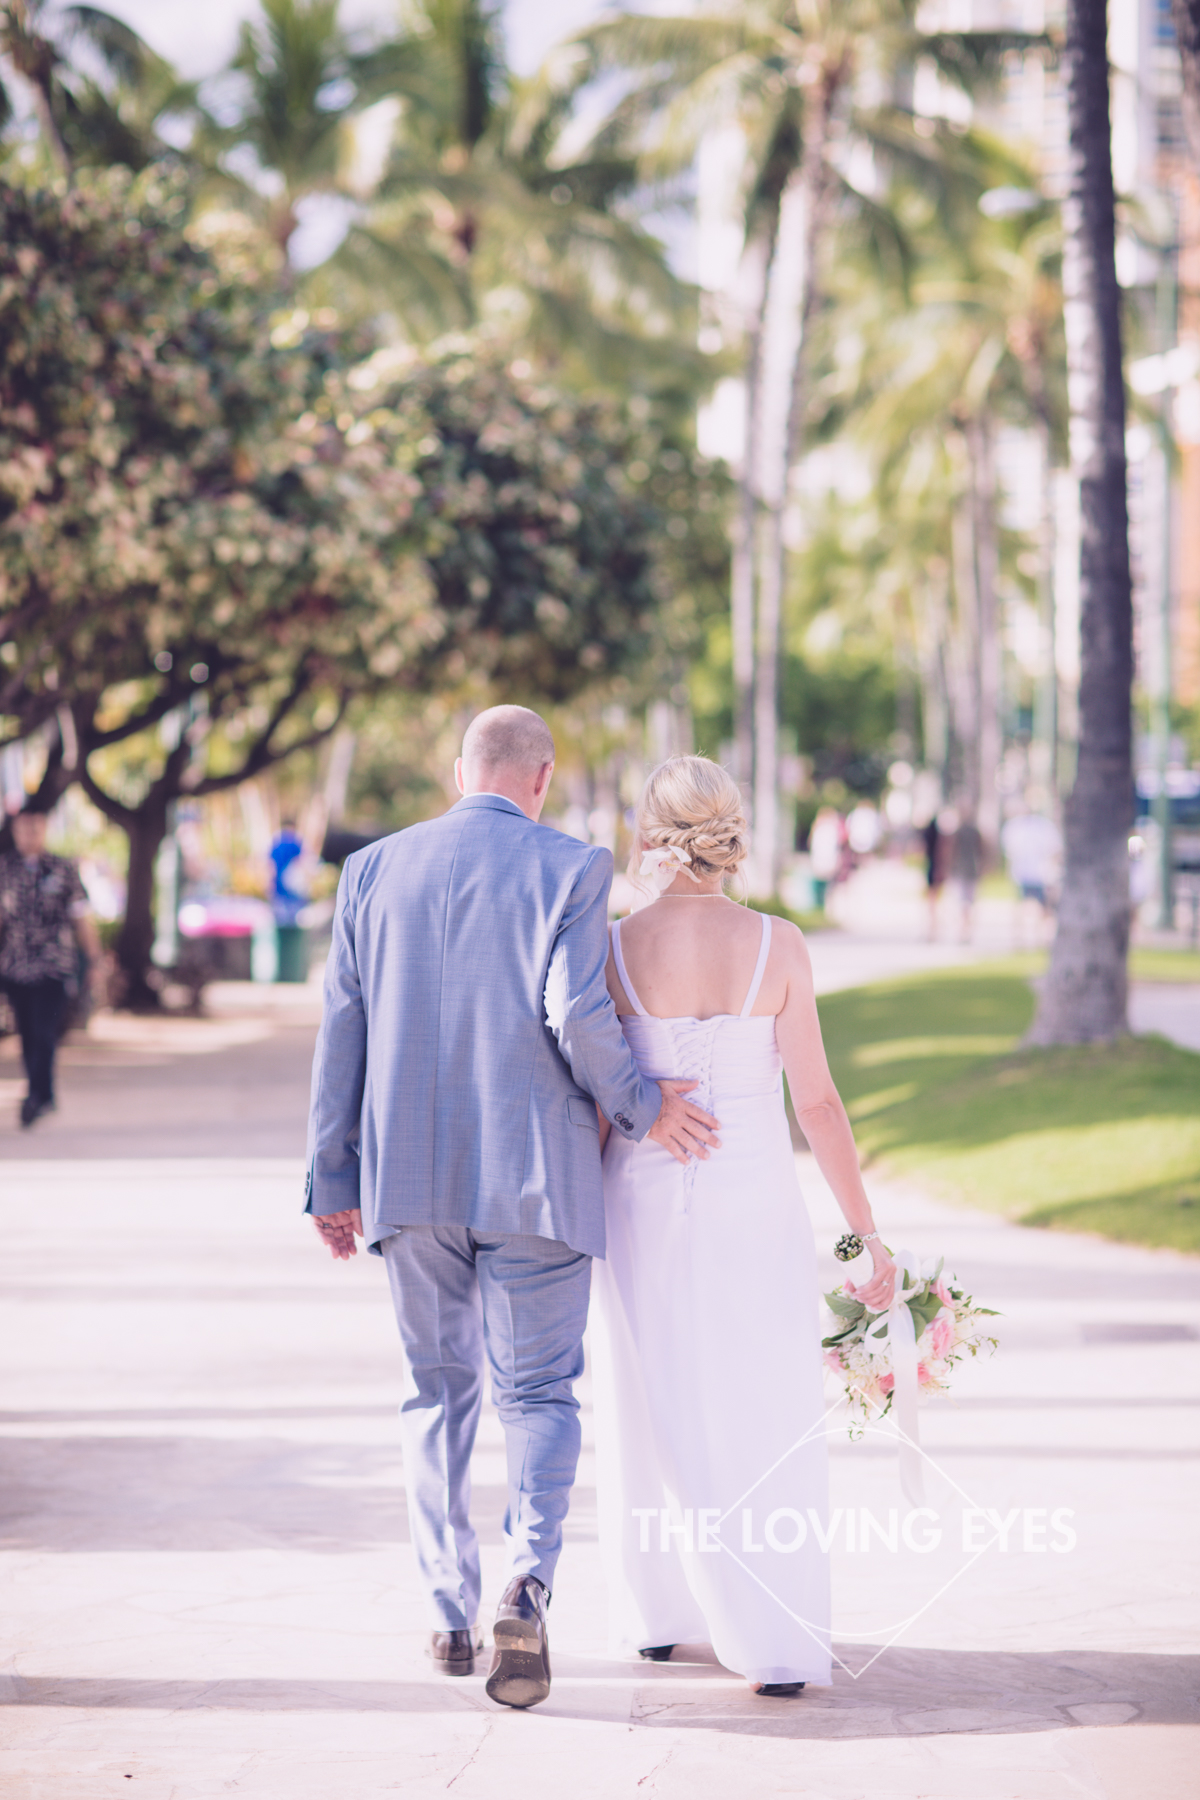 Bride and groom on their wedding day strolling in Waikiki